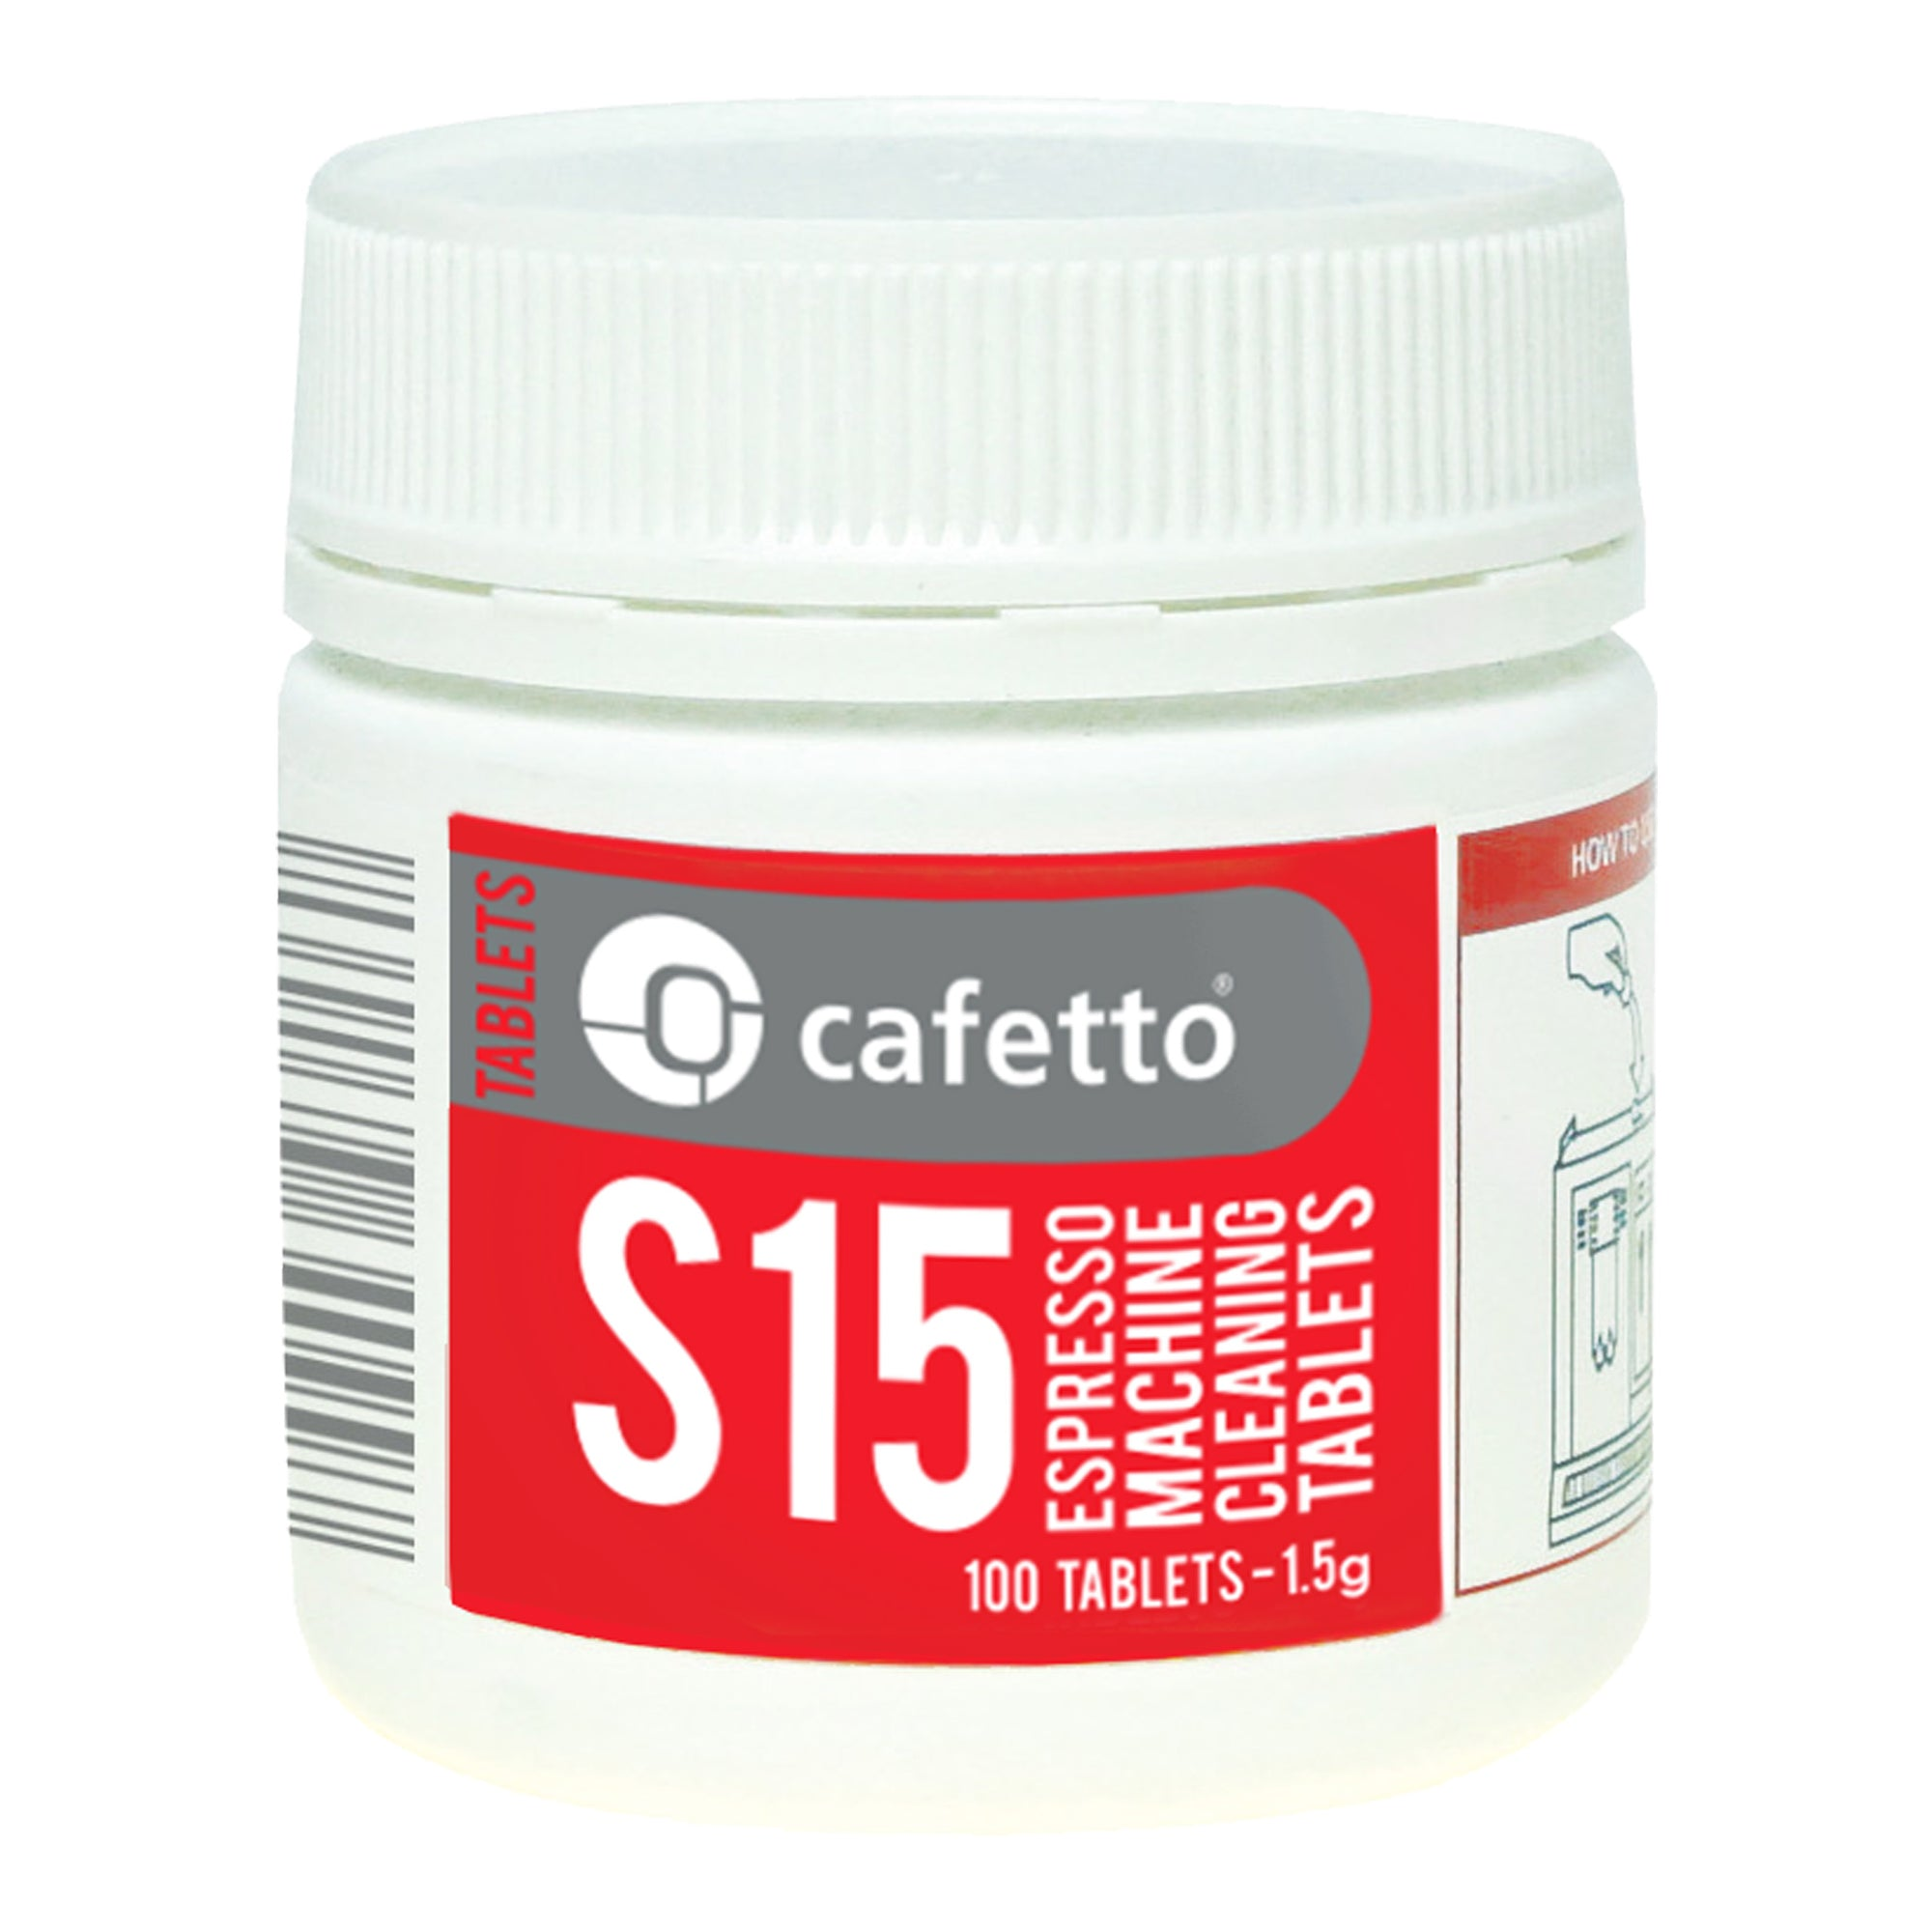 Cafetto S15 automatic machine tabs - Espresso Gear